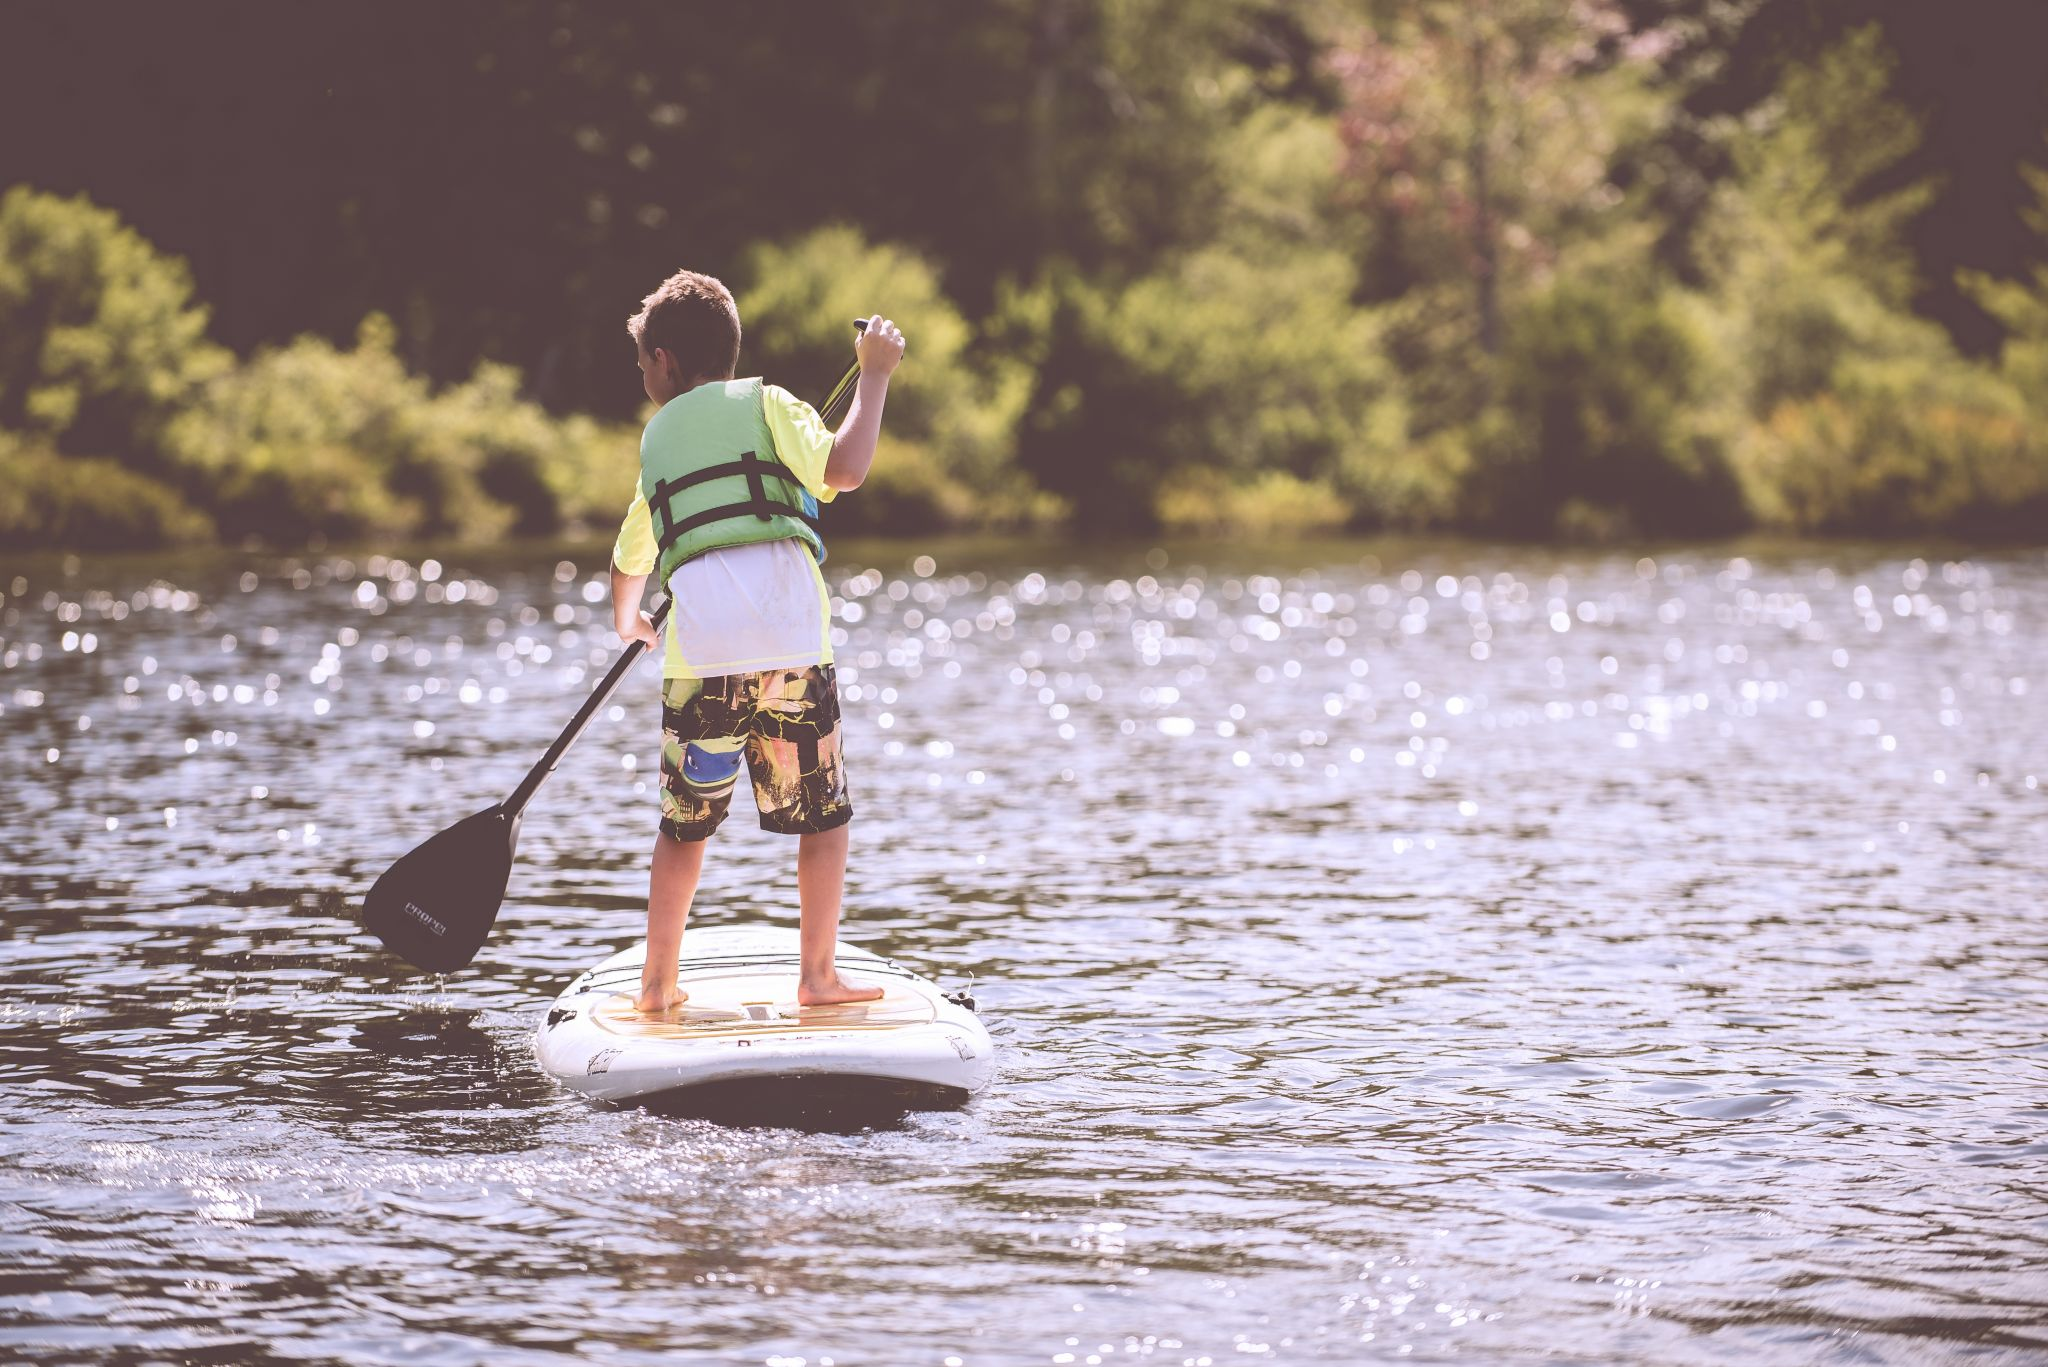 Young boy on a paddle board in a river - getting your kids to join a kids' club could make their holiday